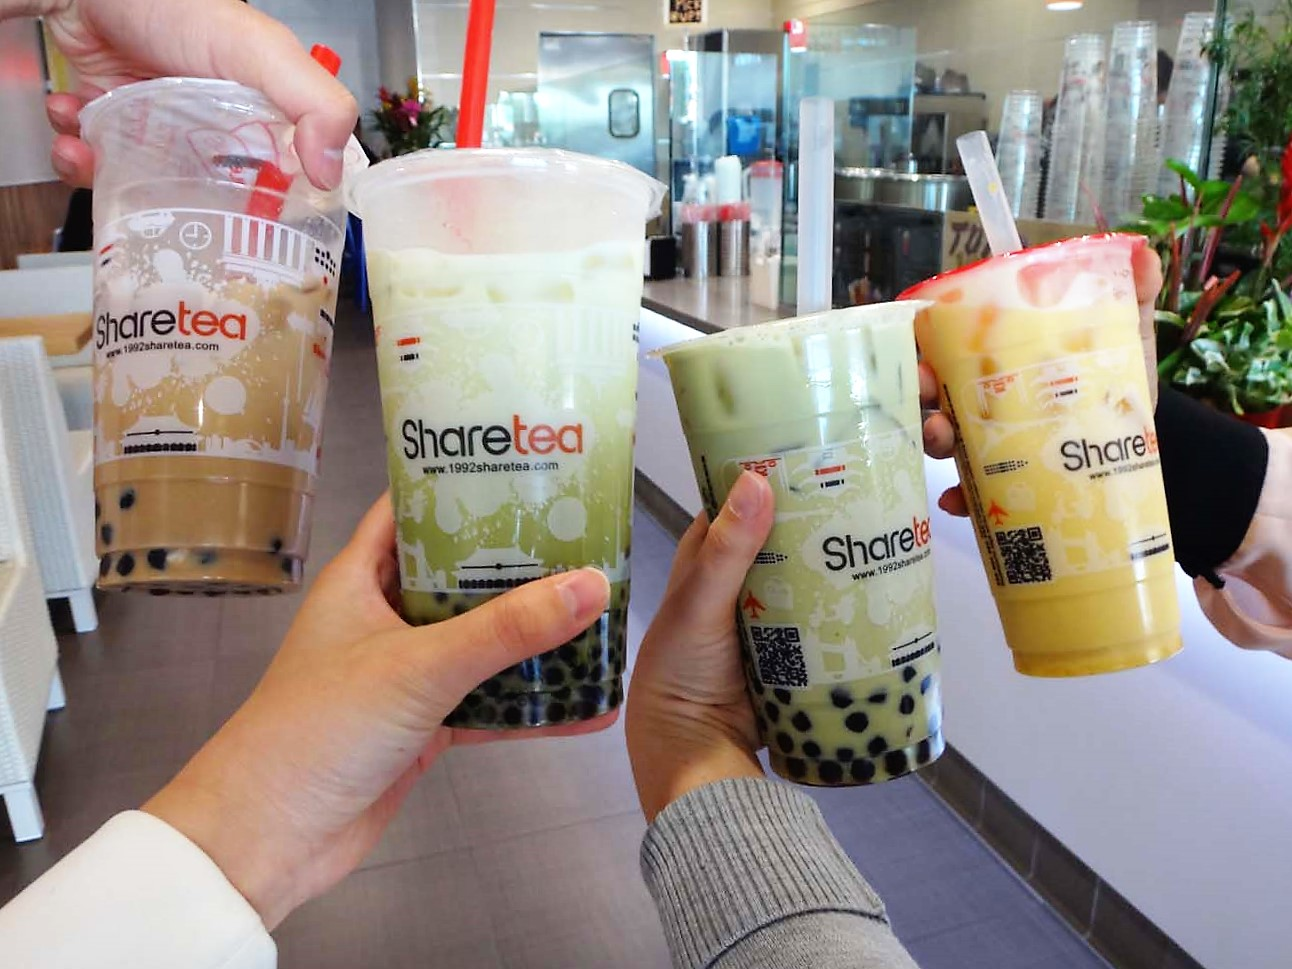 POPULAR TAIWANESE BUBBLE TEA CHAIN SHARETEA IS IN FULLERTON!